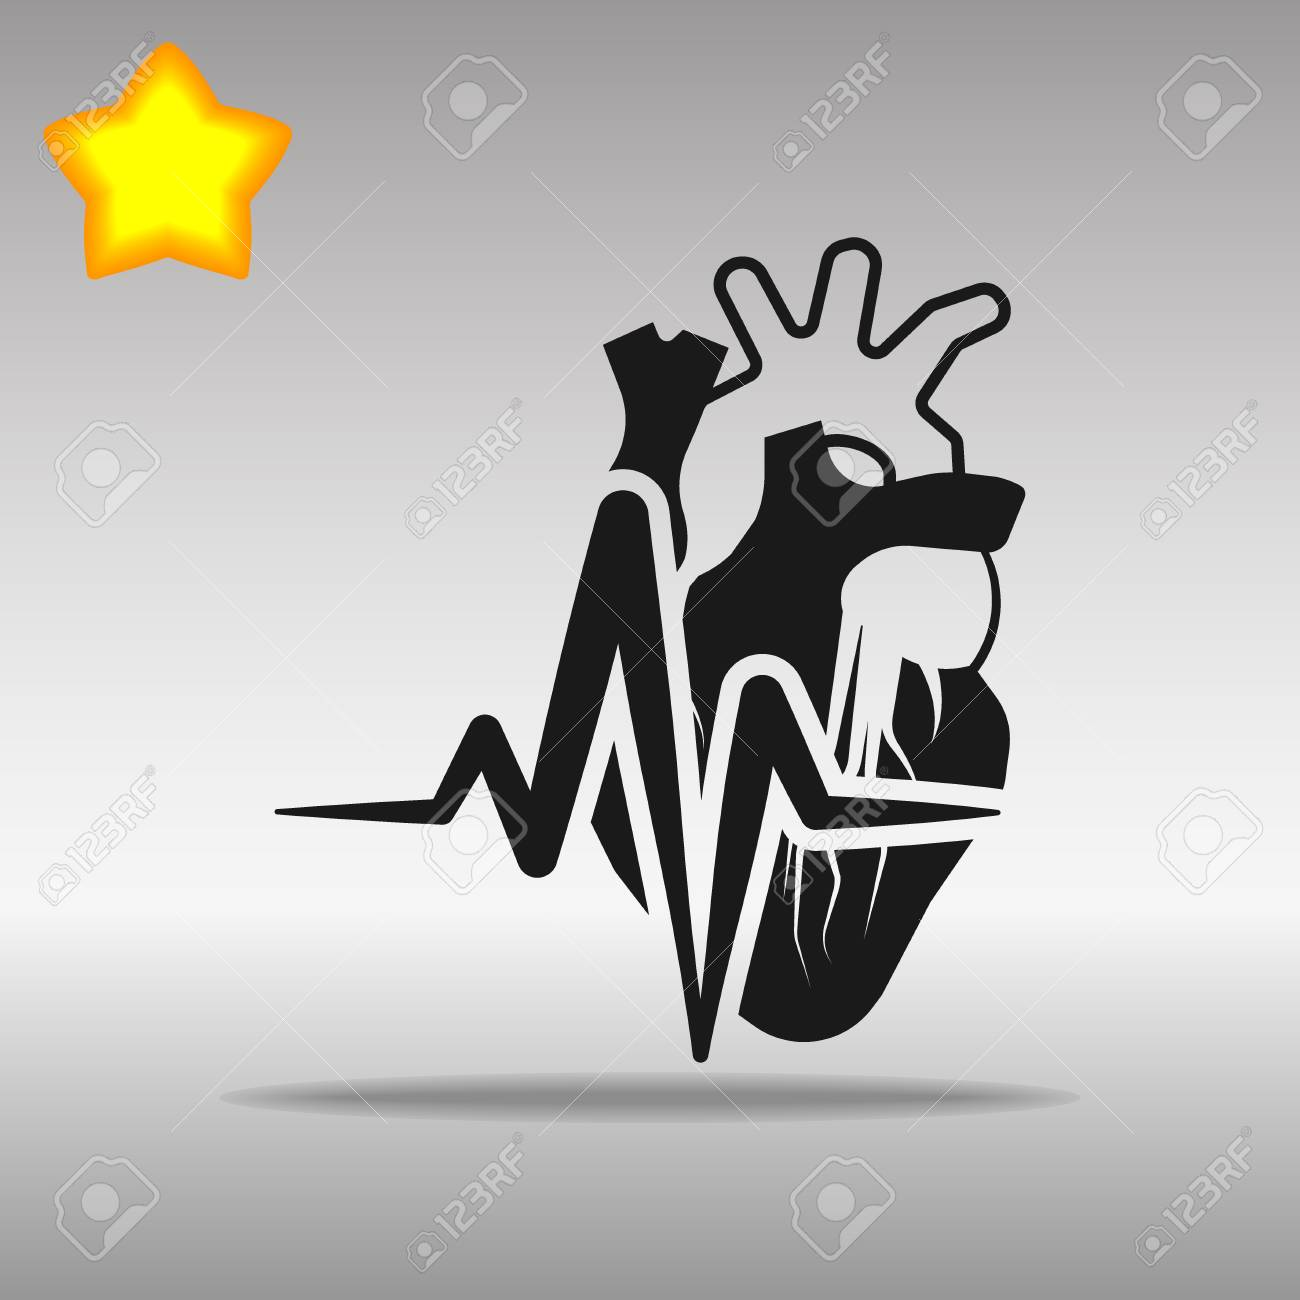 heartbeat heart black Icon button logo symbol concept high quality on the gray background - 82176451